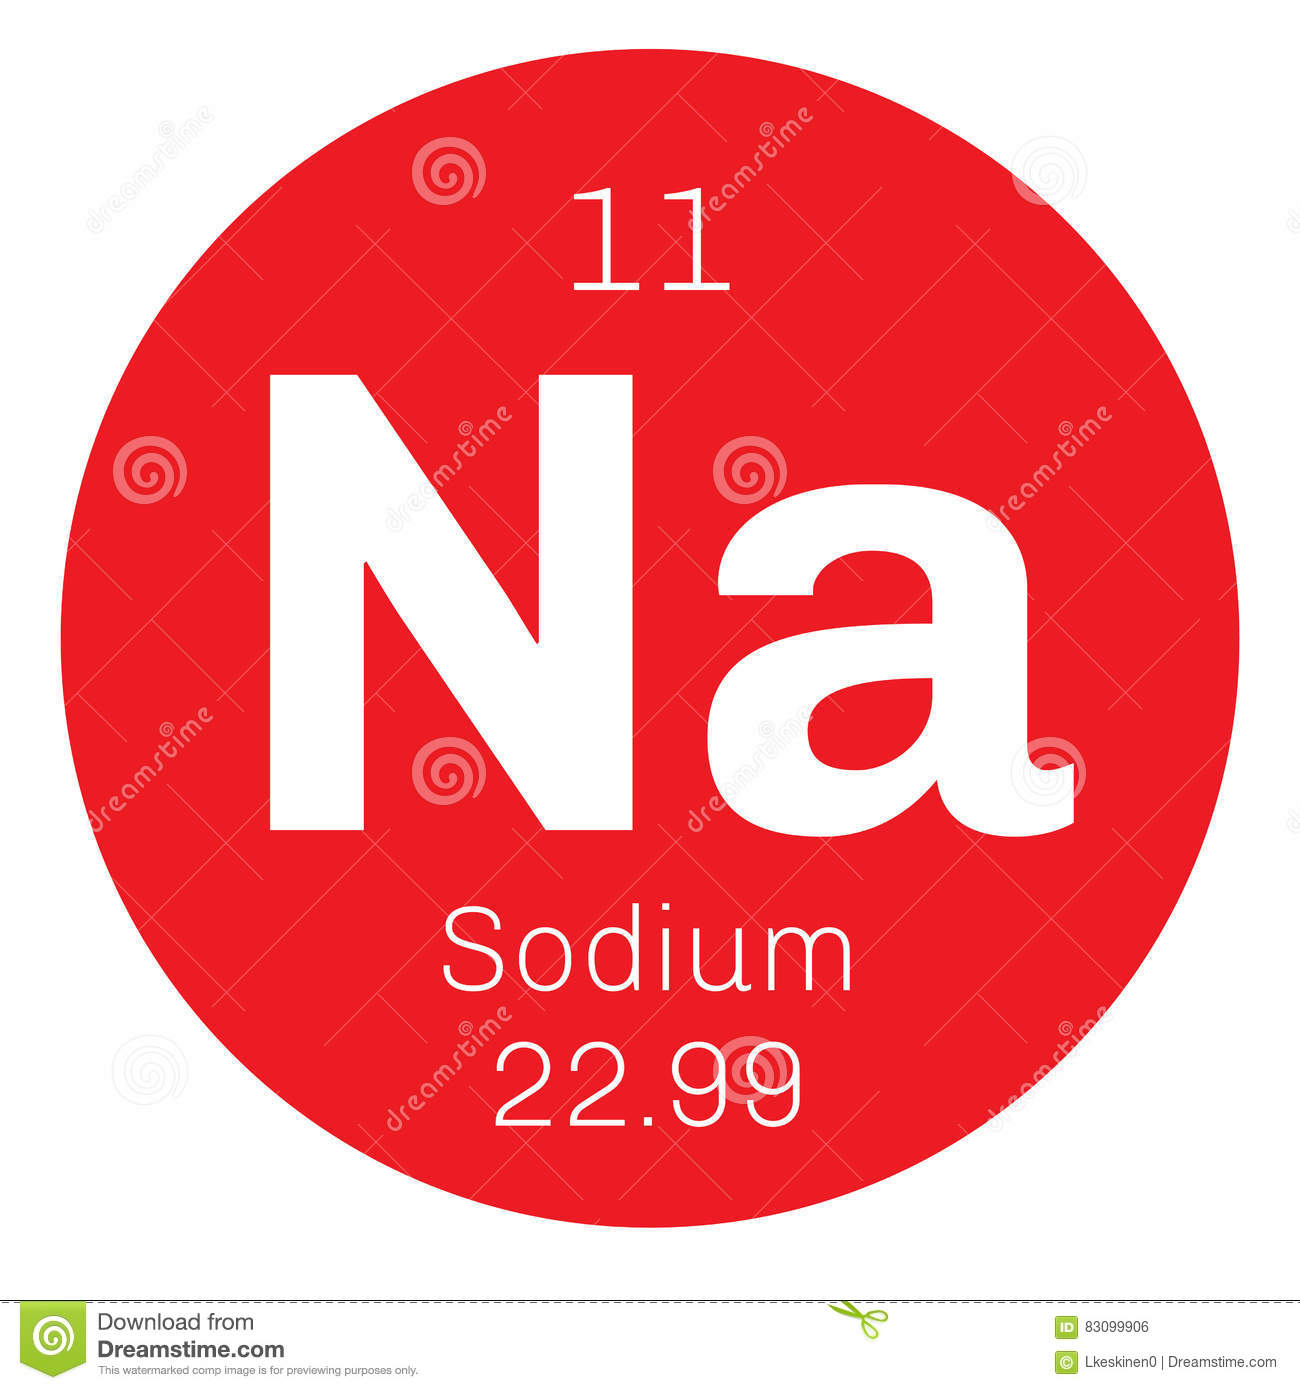 Sodium Chemical Element Stock Vector Illustration Of Laboratory